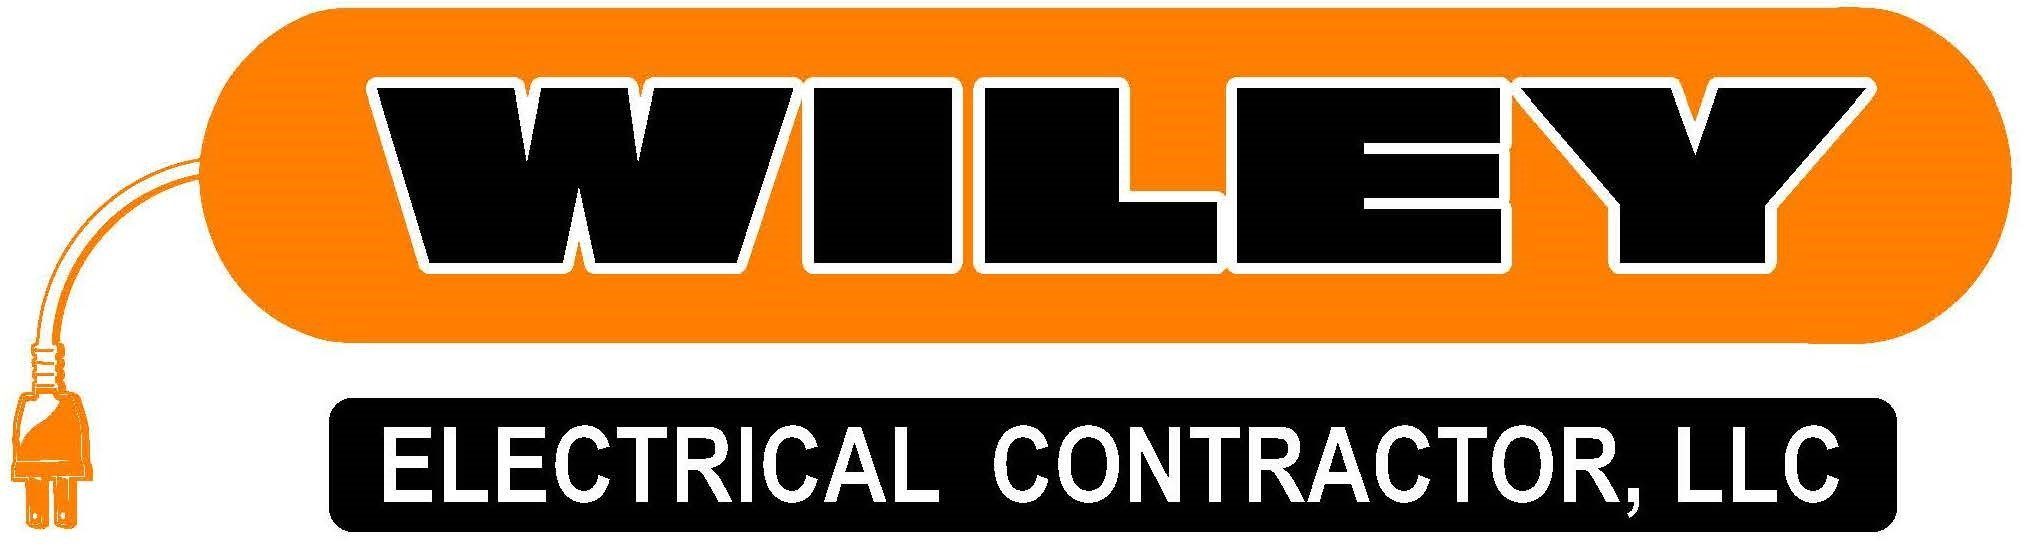 Wiley Electrical Contractor, LLC